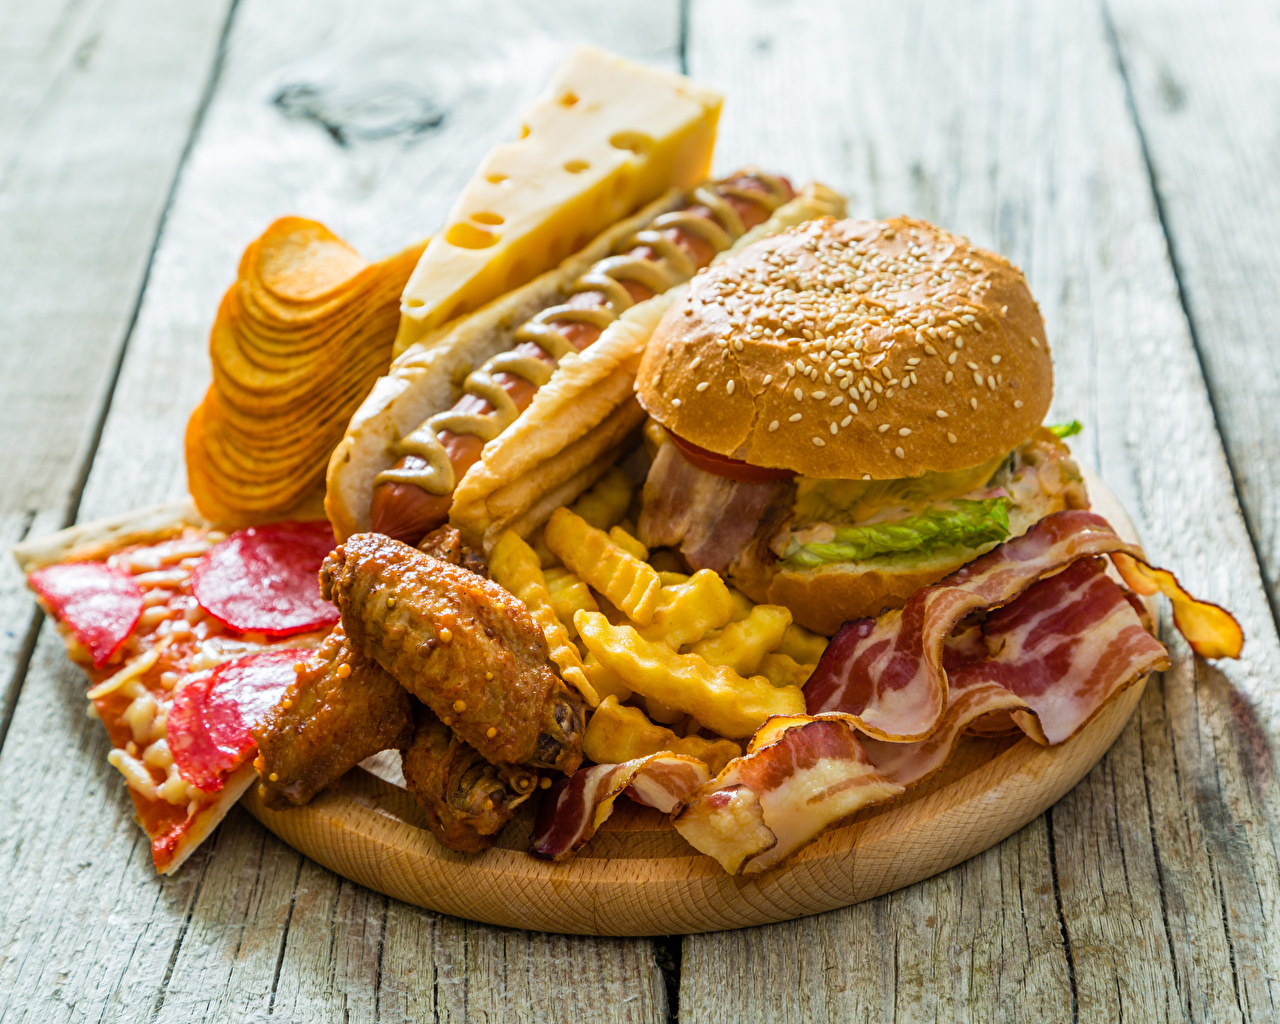 Image Chips Hot dog Hamburger finger chips Cheese Fast 1280x1024 1280x1024